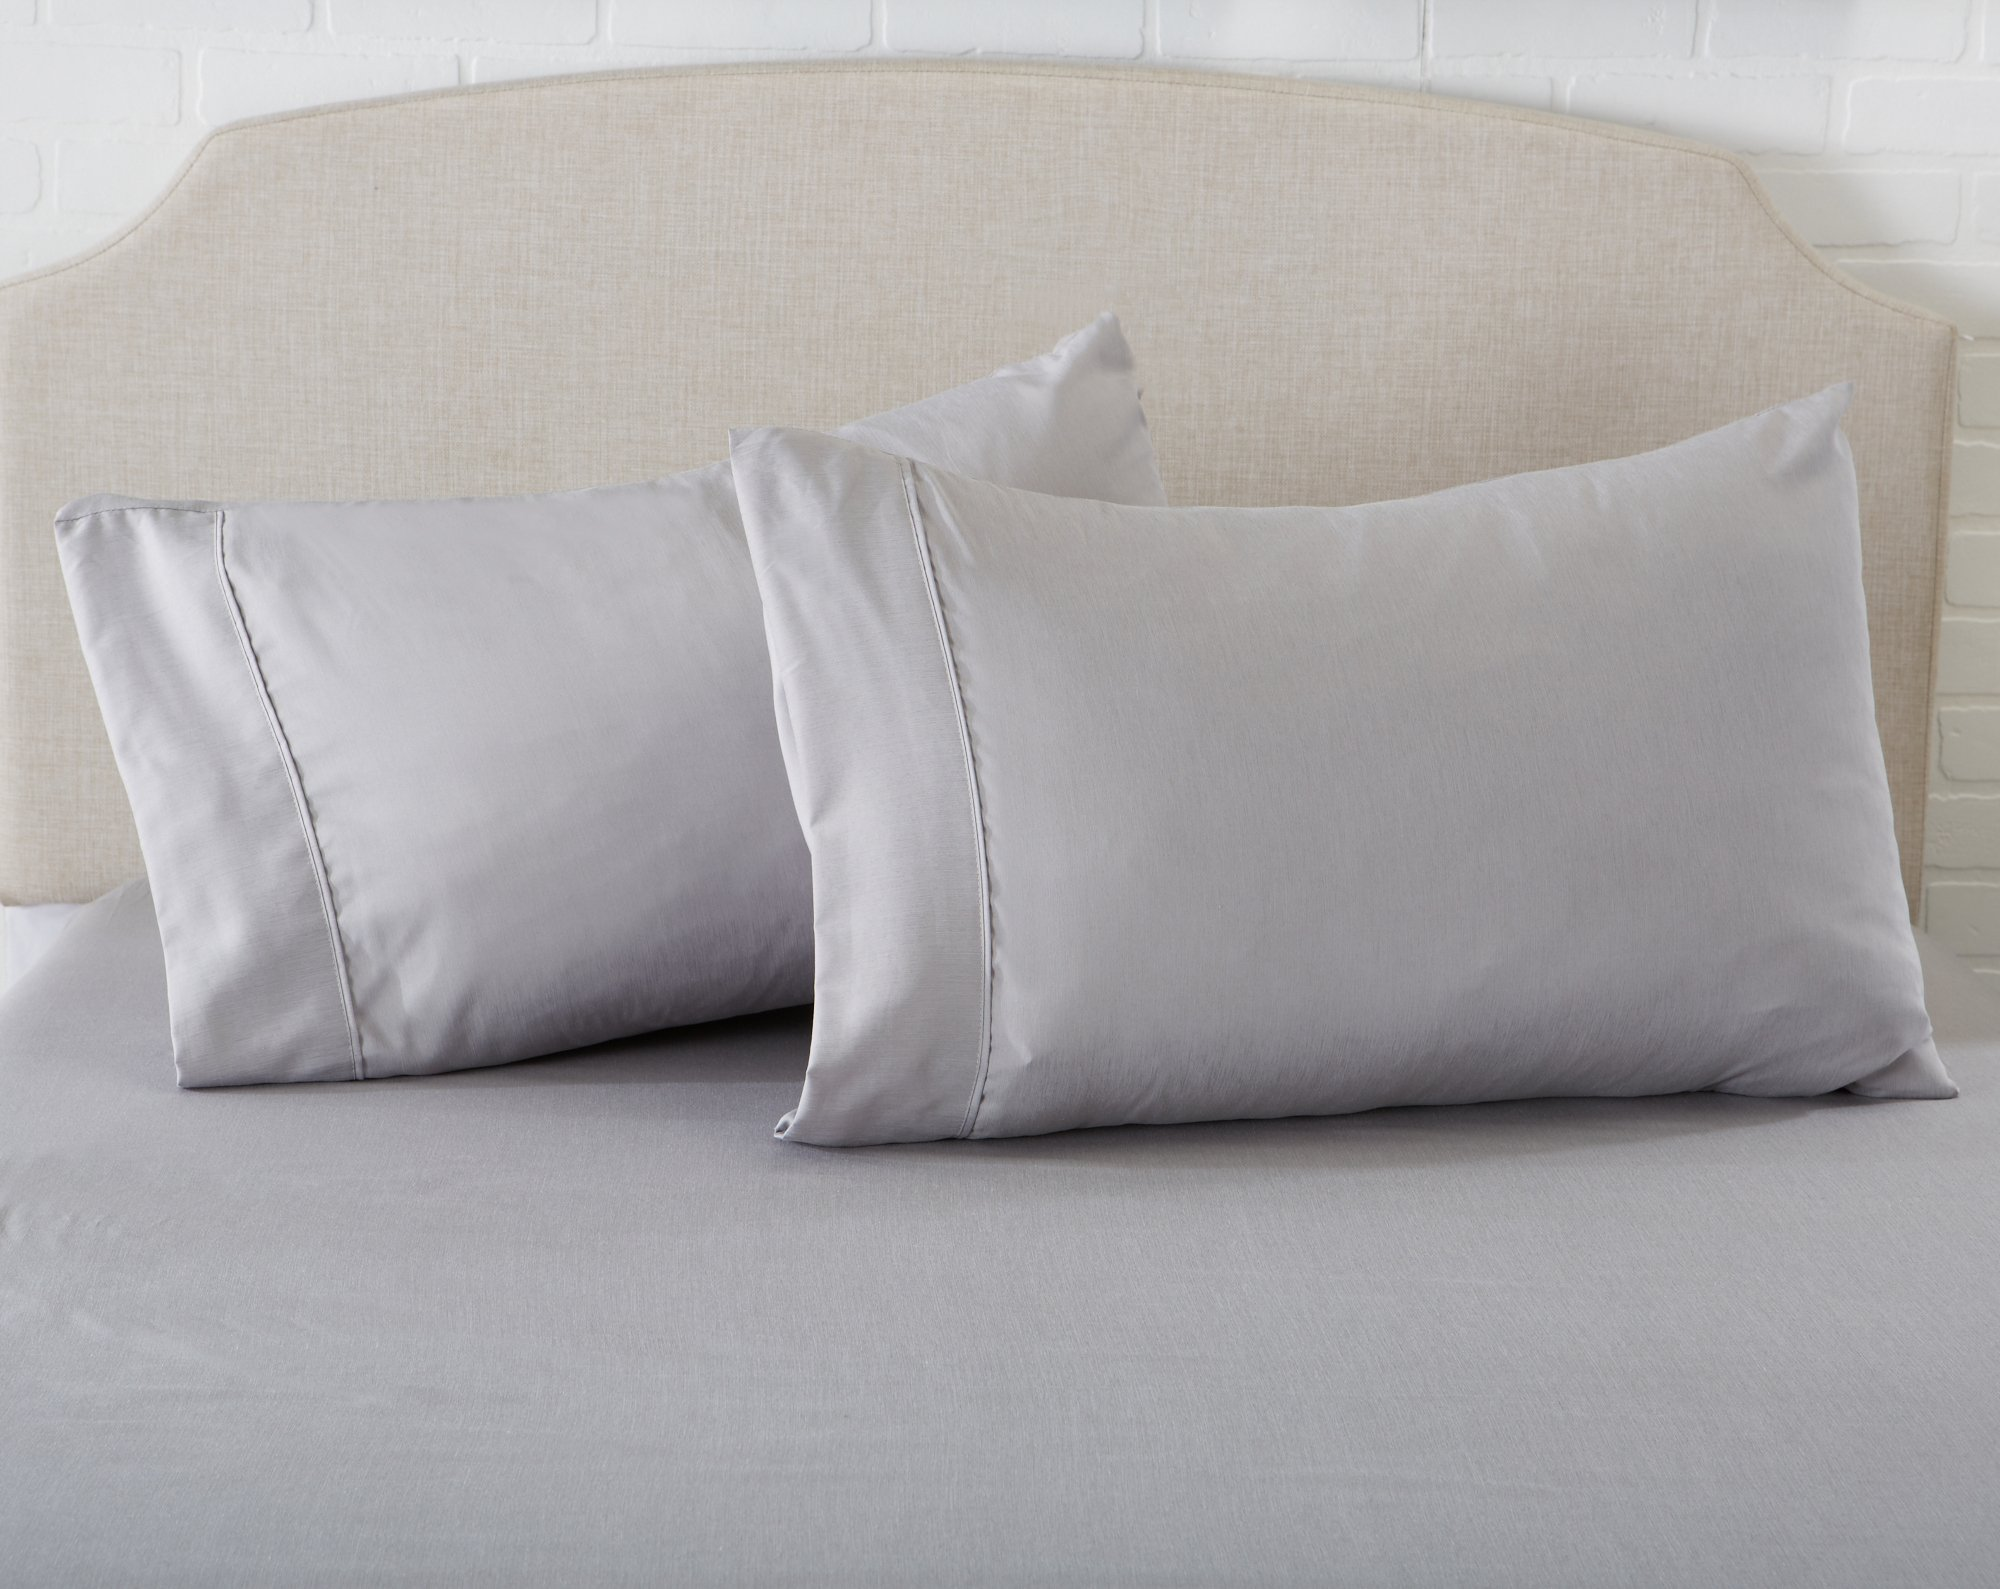 Great Bay Home Luxury Ultra Soft Bamboo Sheet Set. Spa-Quality, Comfortable, All-Season Bed Sheets. By Brand. (King, Paloma Grey) by Great Bay Home (Image #6)